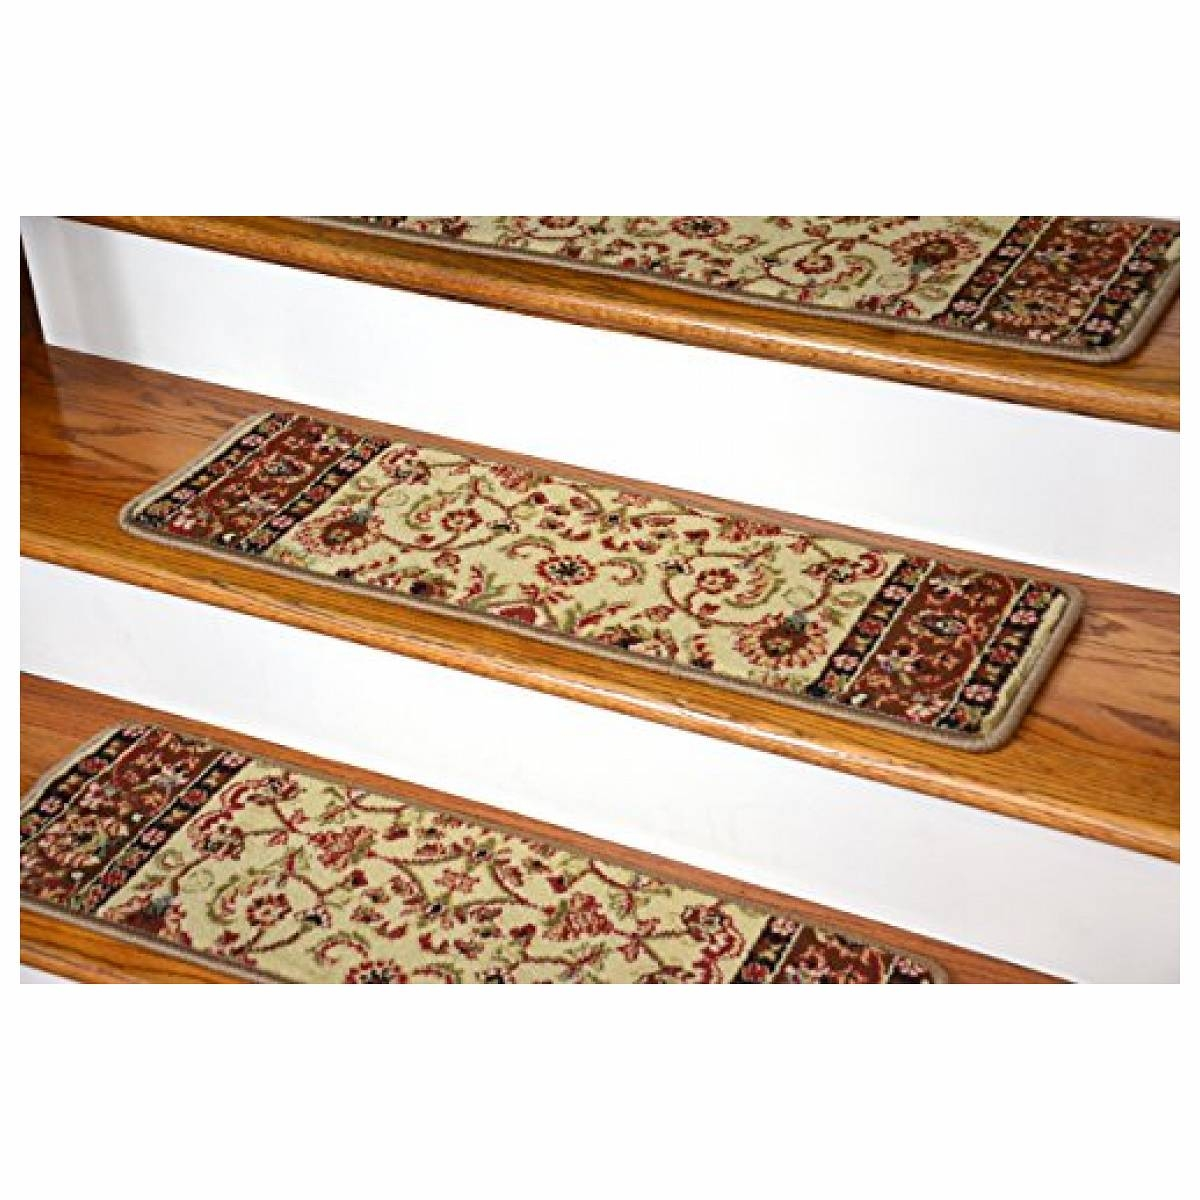 Stair Treads Carpet Free Brown Aqua Shield Boxwood Stair Tread With Regard To Braided Rug Stair Treads (#19 of 20)